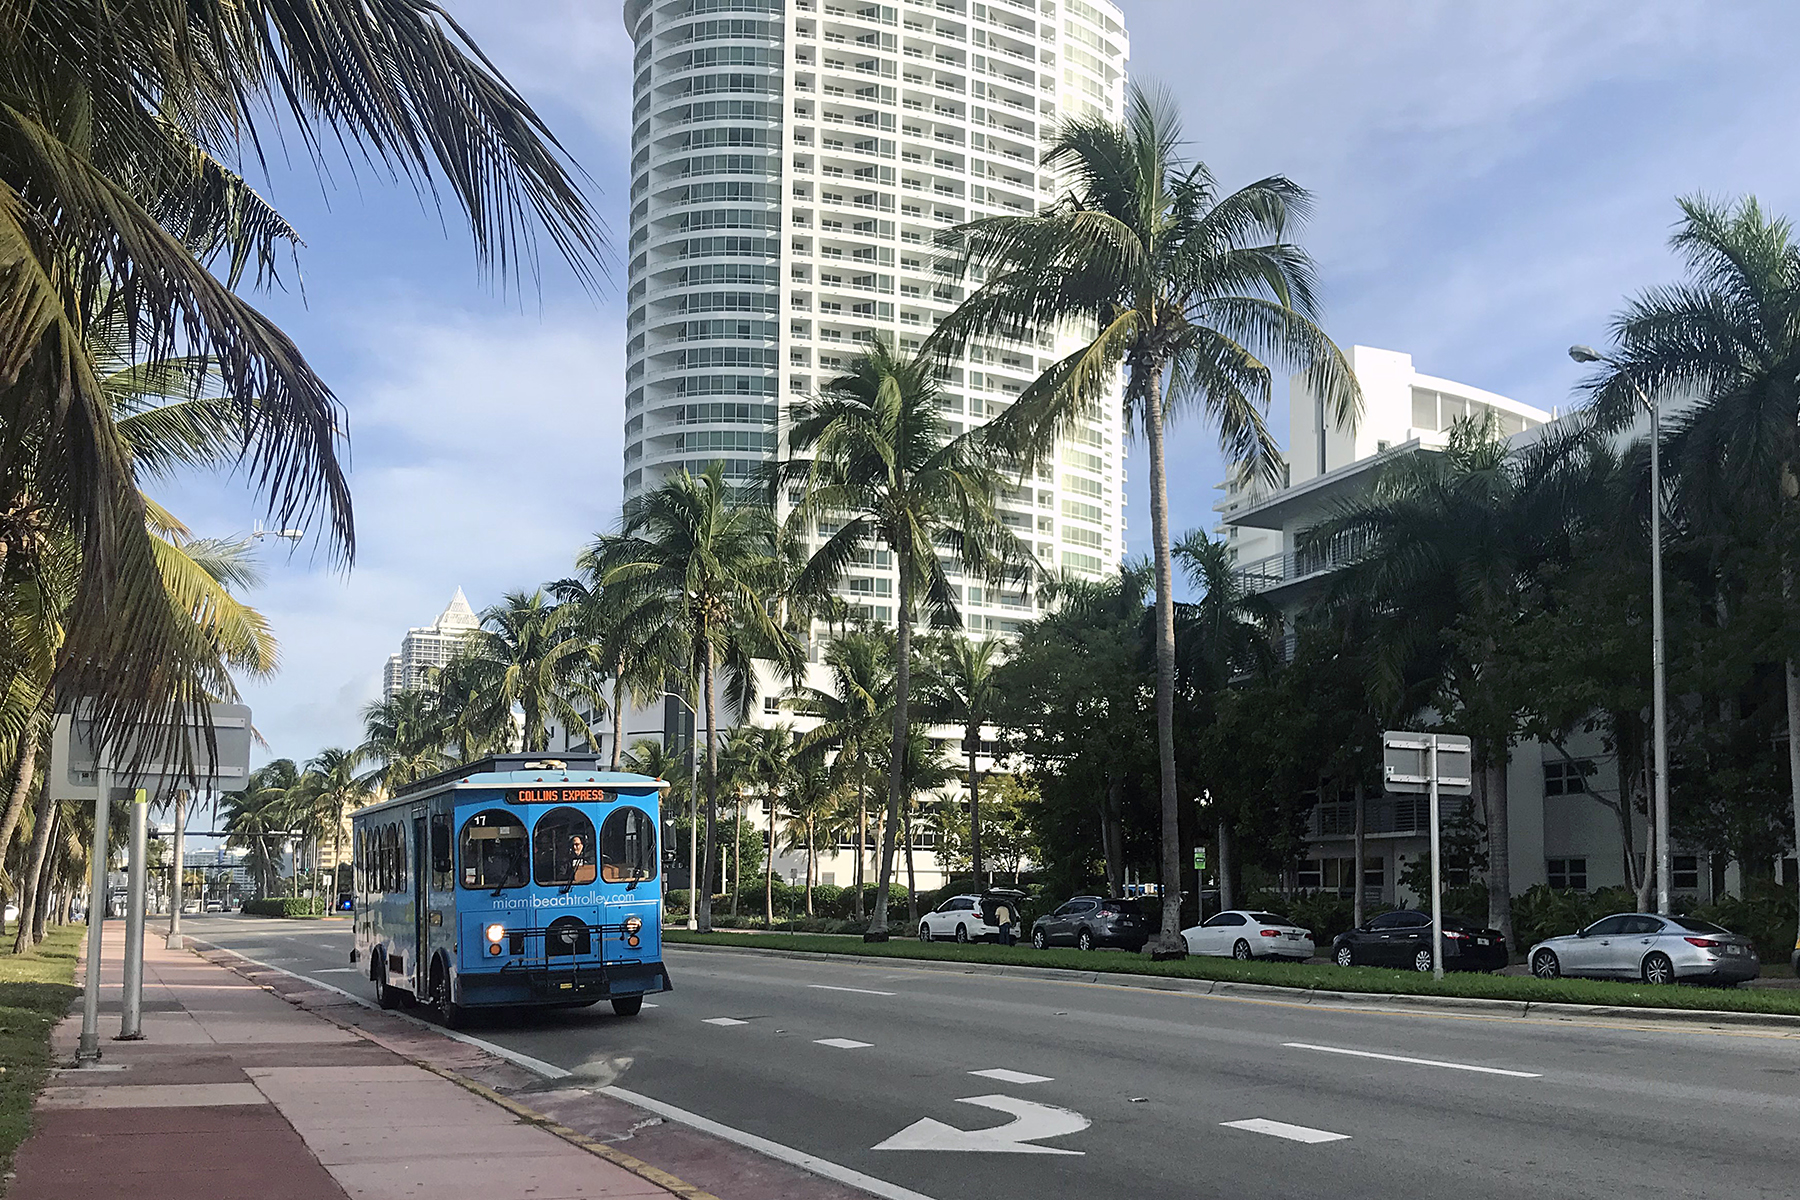 Sonne, Strand, South Beach: 13 Insidertipps für Miami Beach